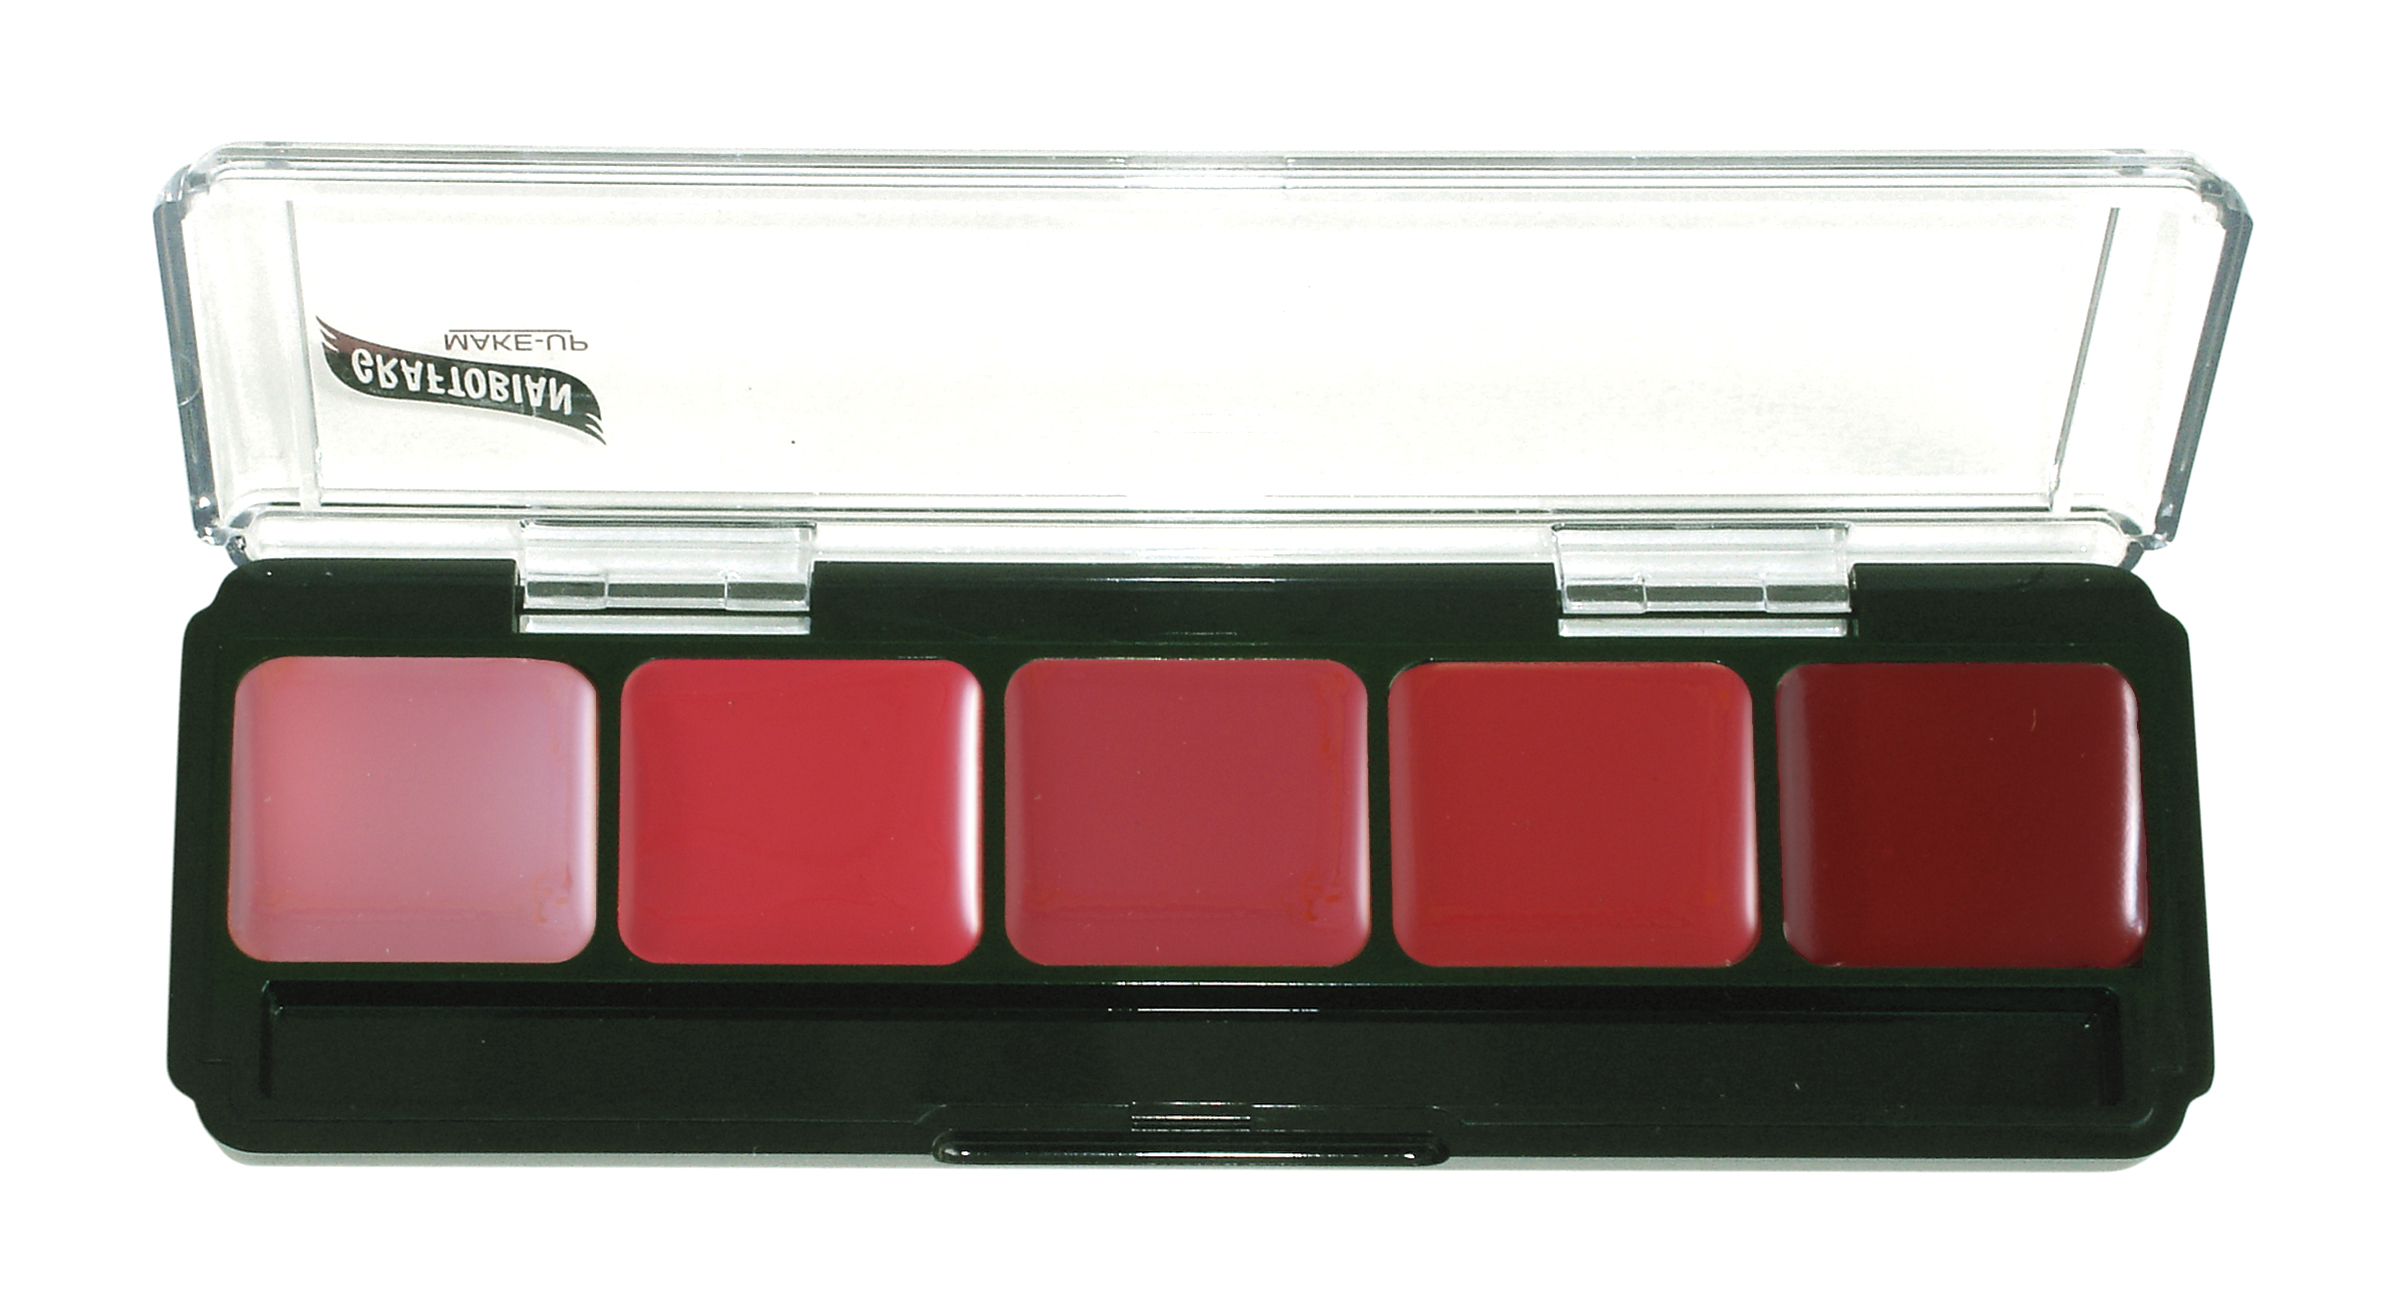 HD Lip Color Palette - Specialty by graftobian #2